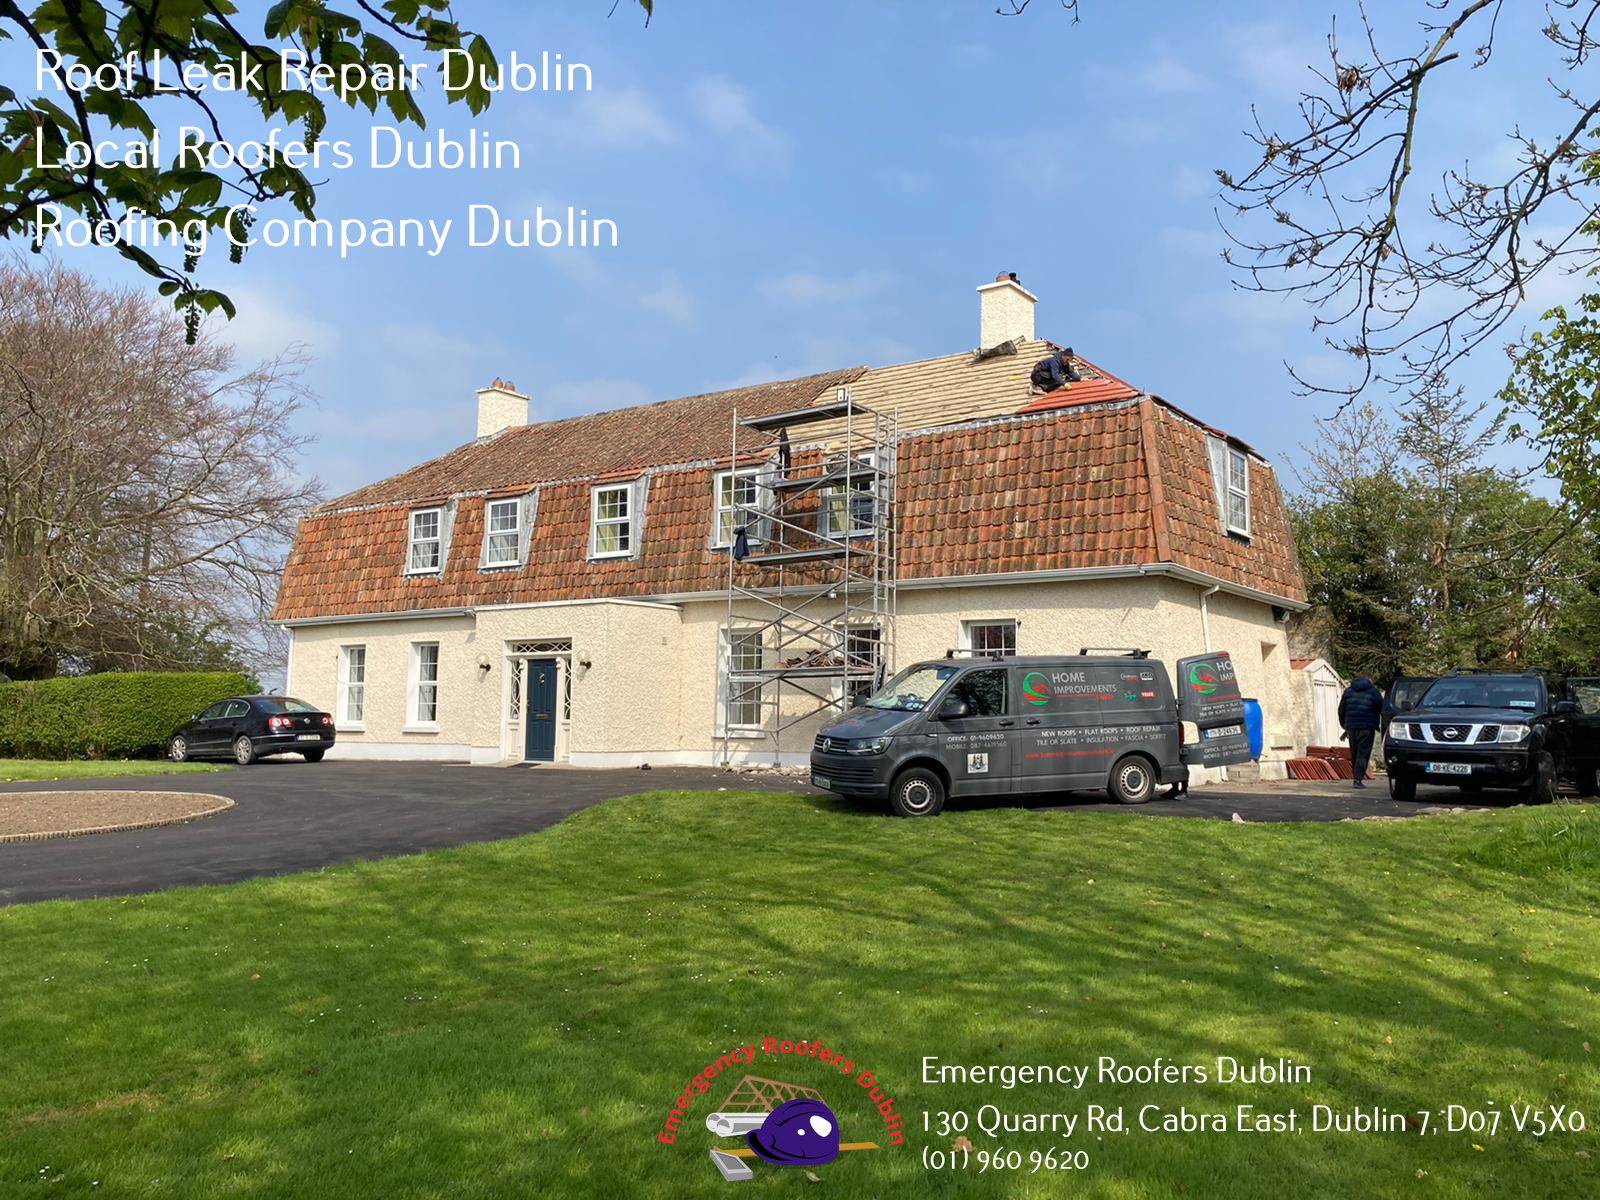 Emergency Roofers Dublin Officially Opens A New Business Profile On Google, Roof Repairs Dublin (Emergency Roofers Dublin), To Service Dublin 1 and Surrounding Areas 1